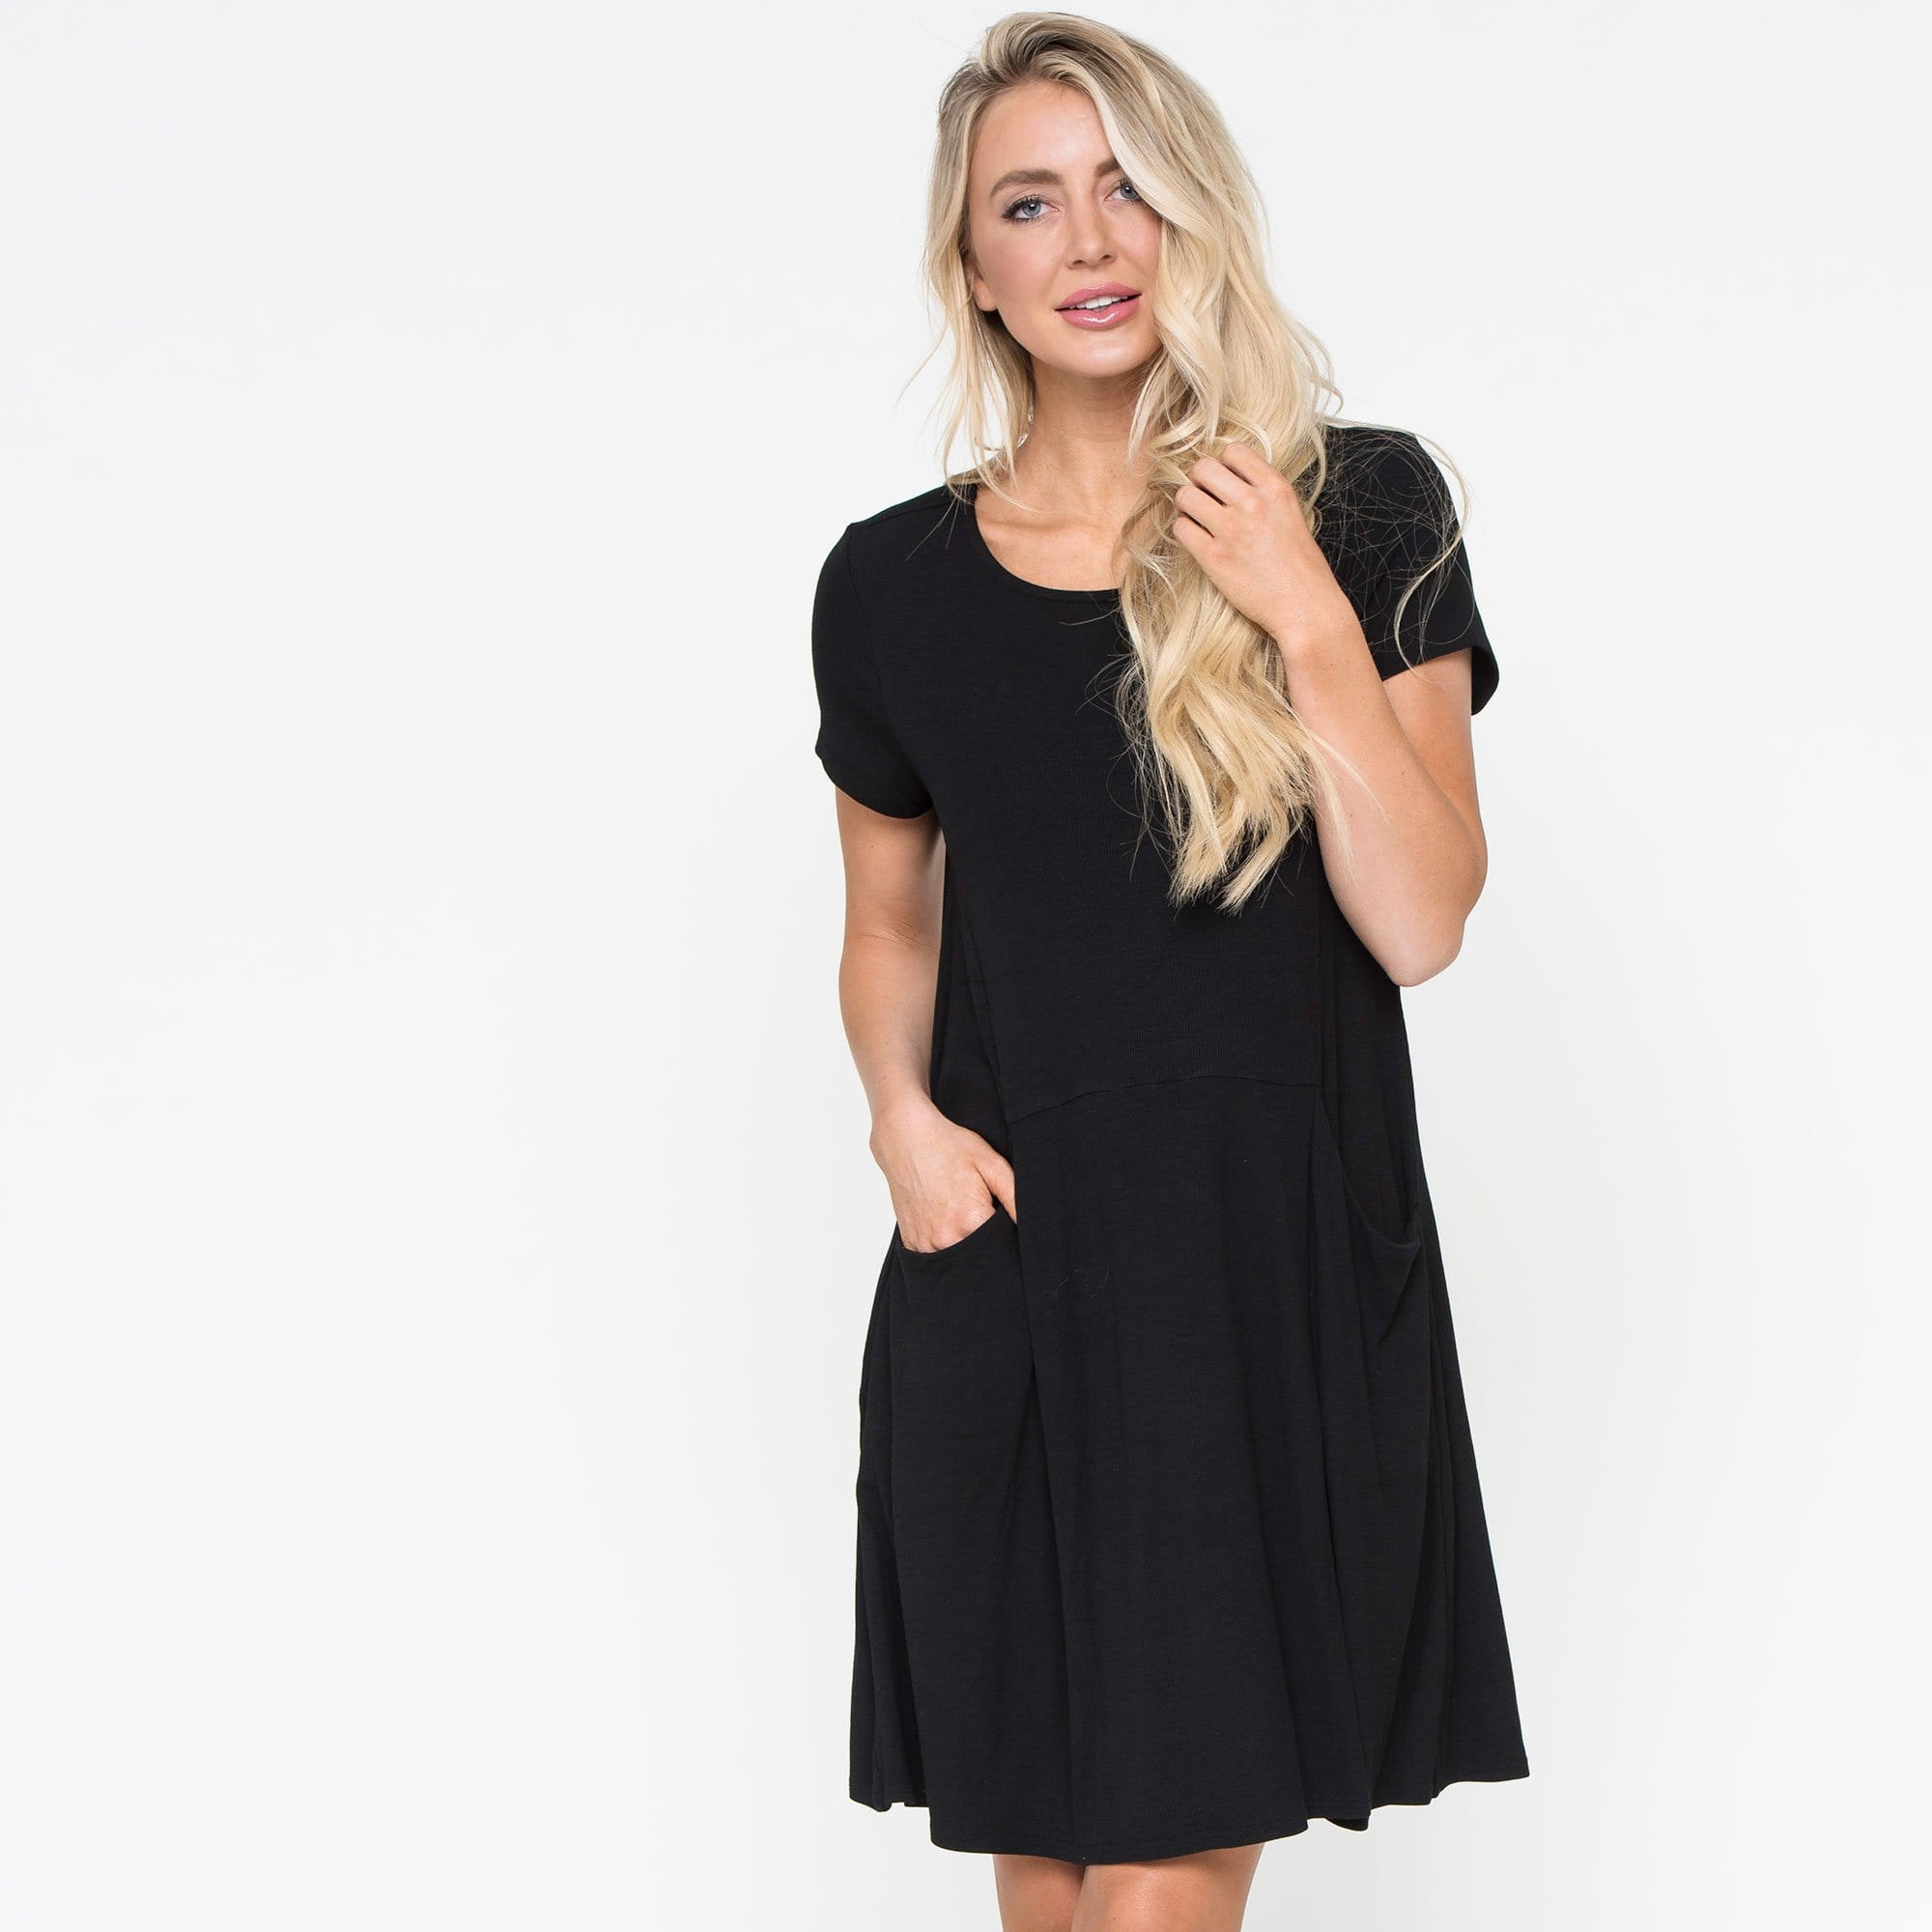 Sunny Shores Dress